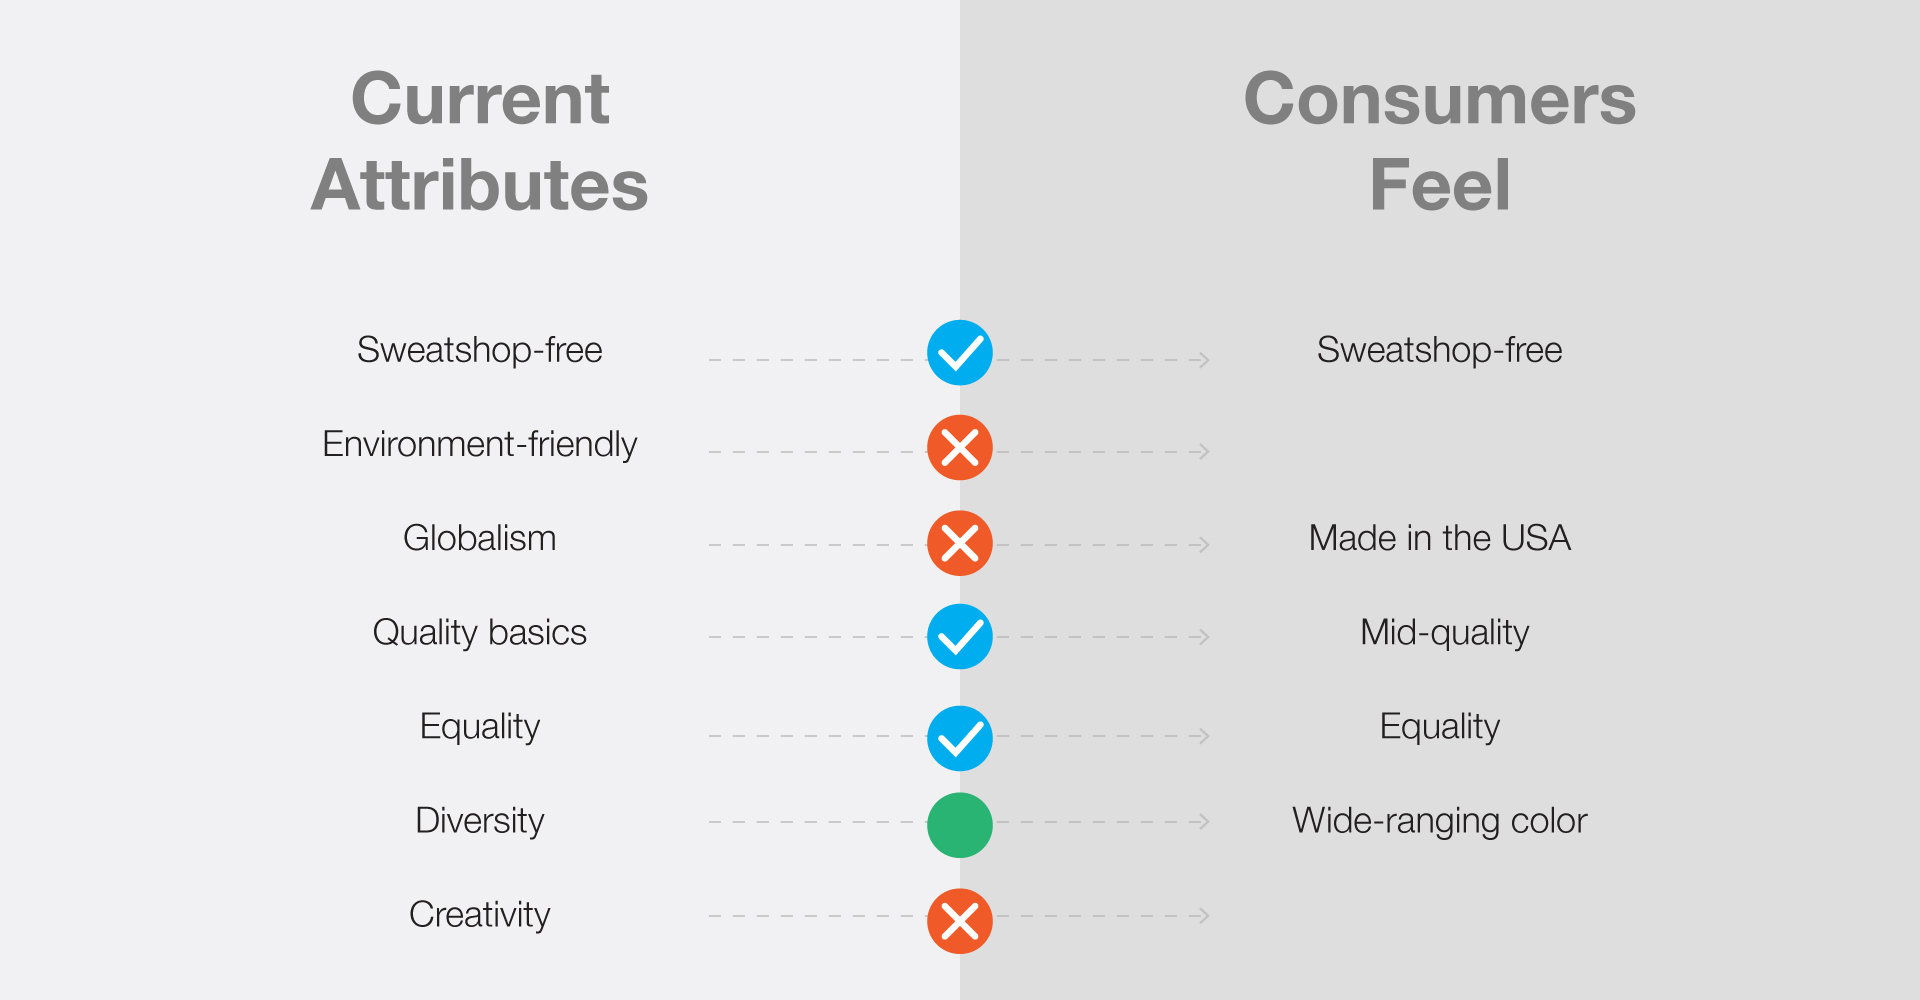 attributes-vs-consumers-feel.jpg